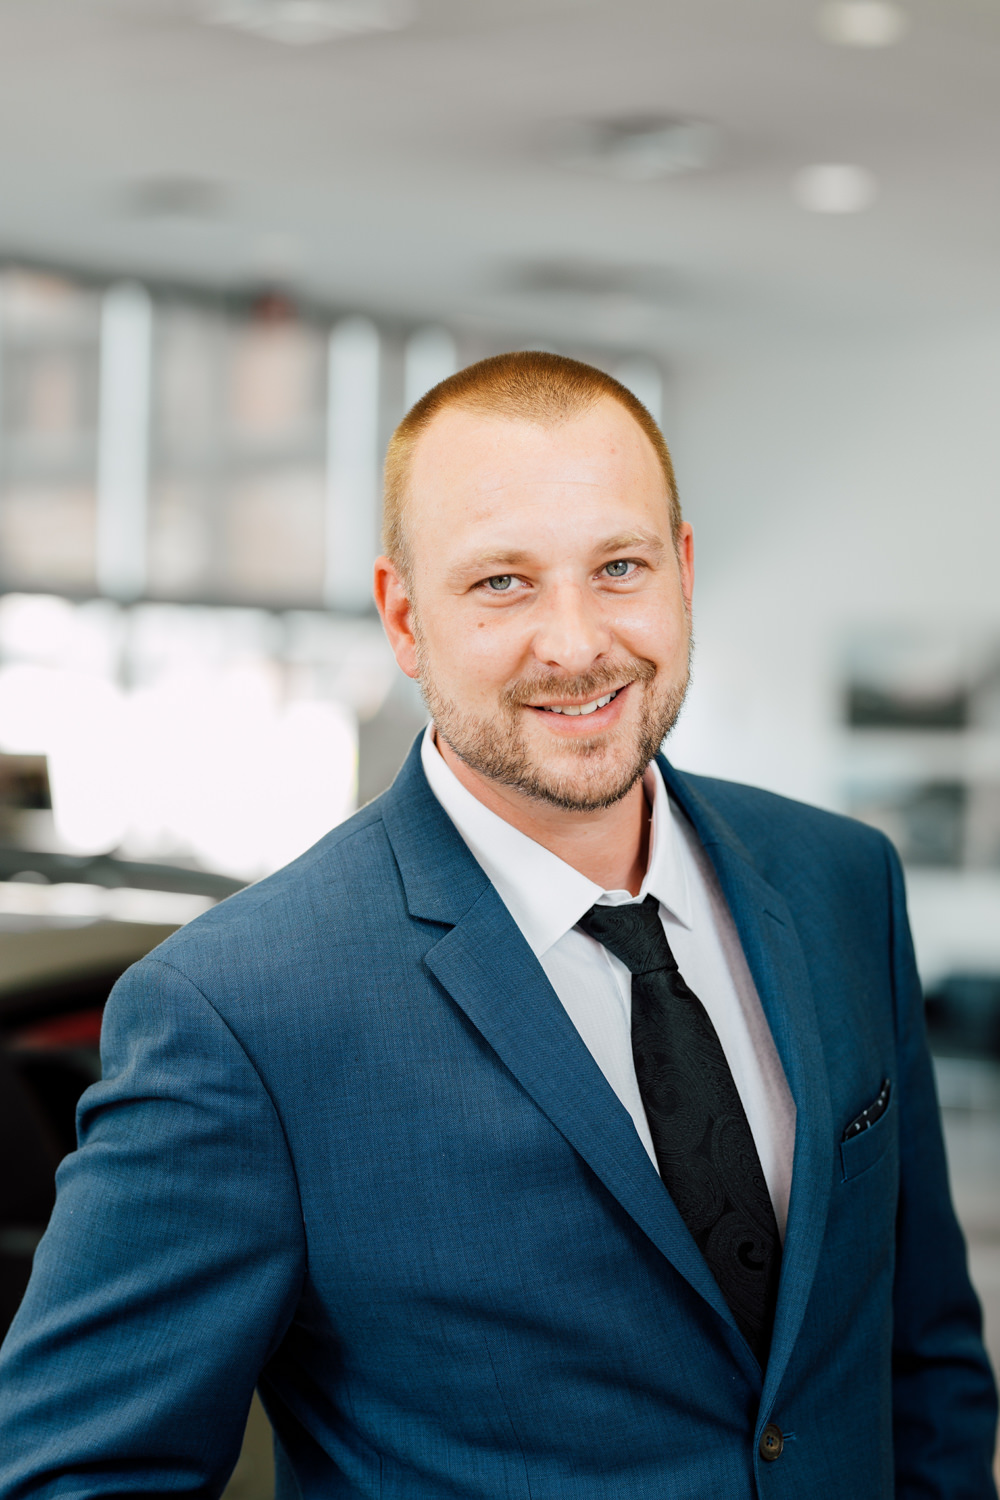 Jason Zommers - Service Manager